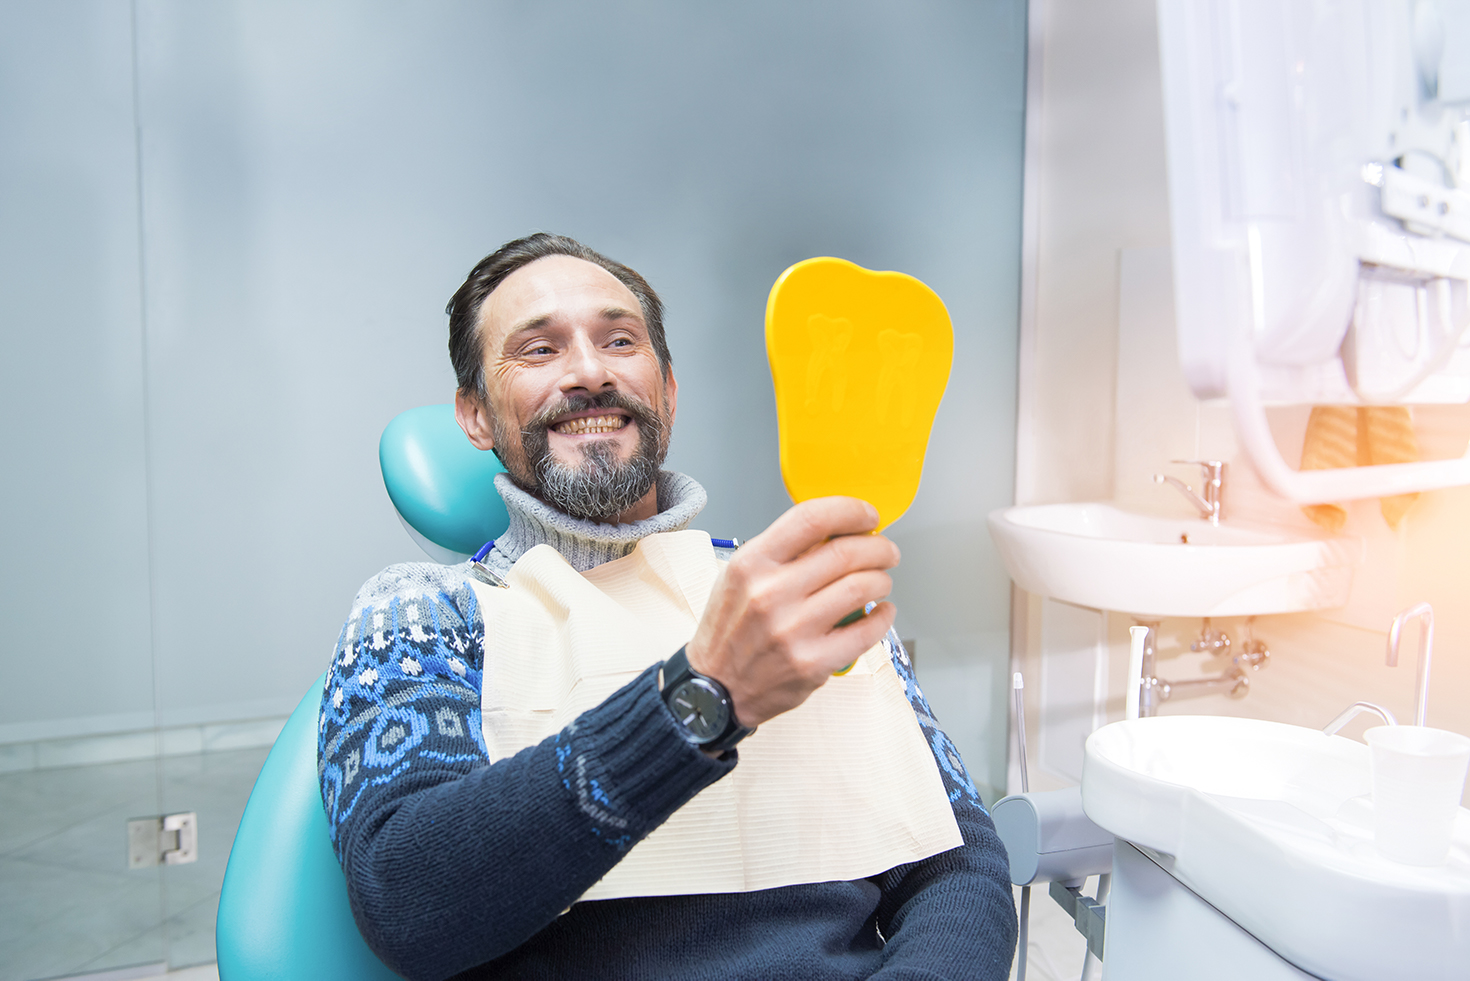 Man with dental implants